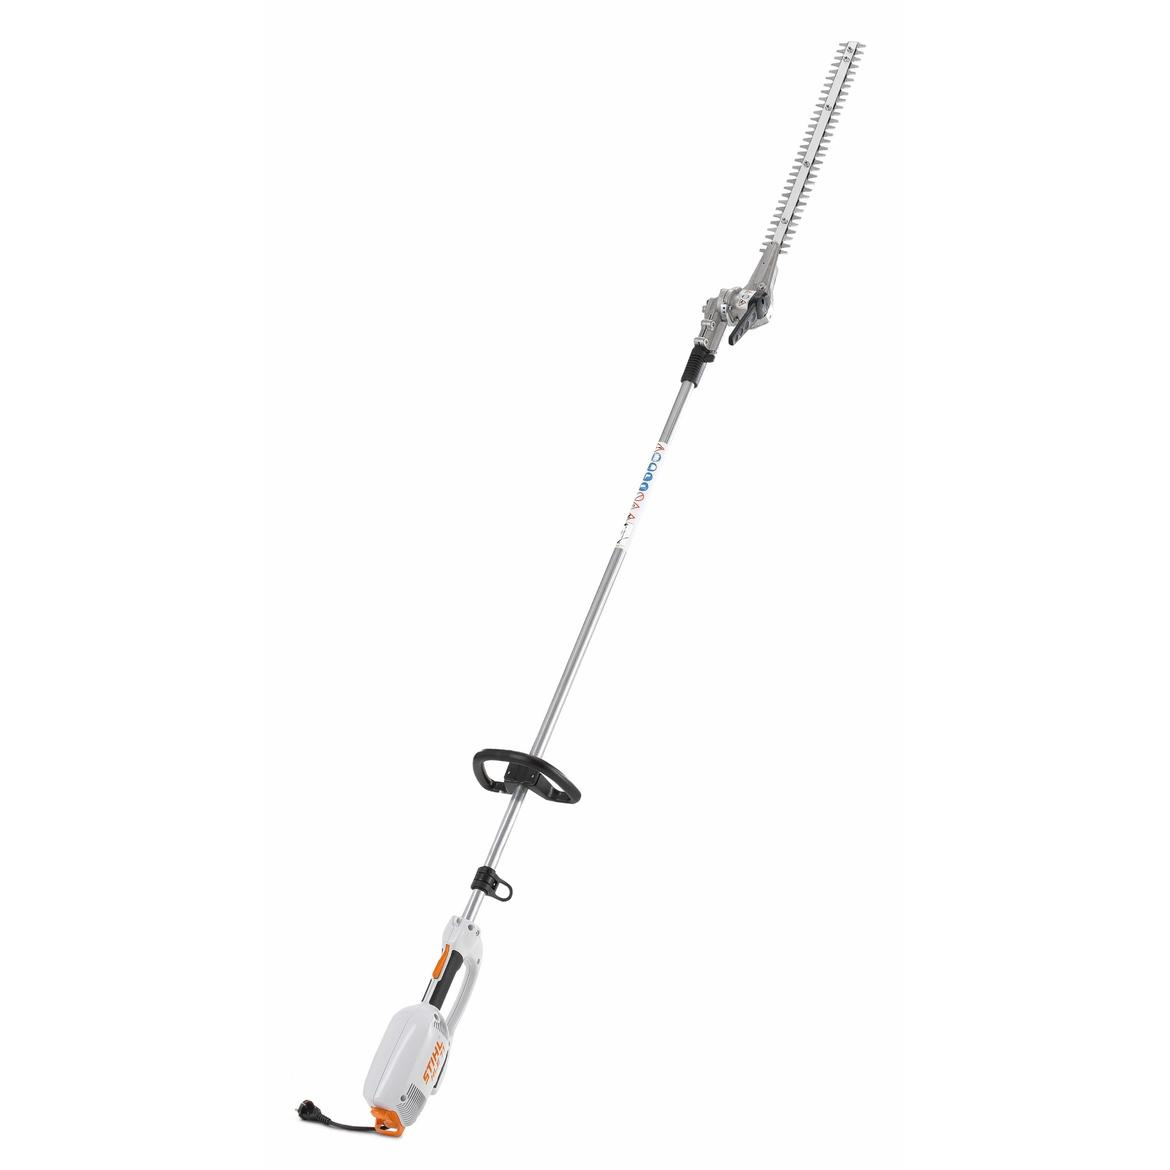 Stihl long reach hedge trimmer manual